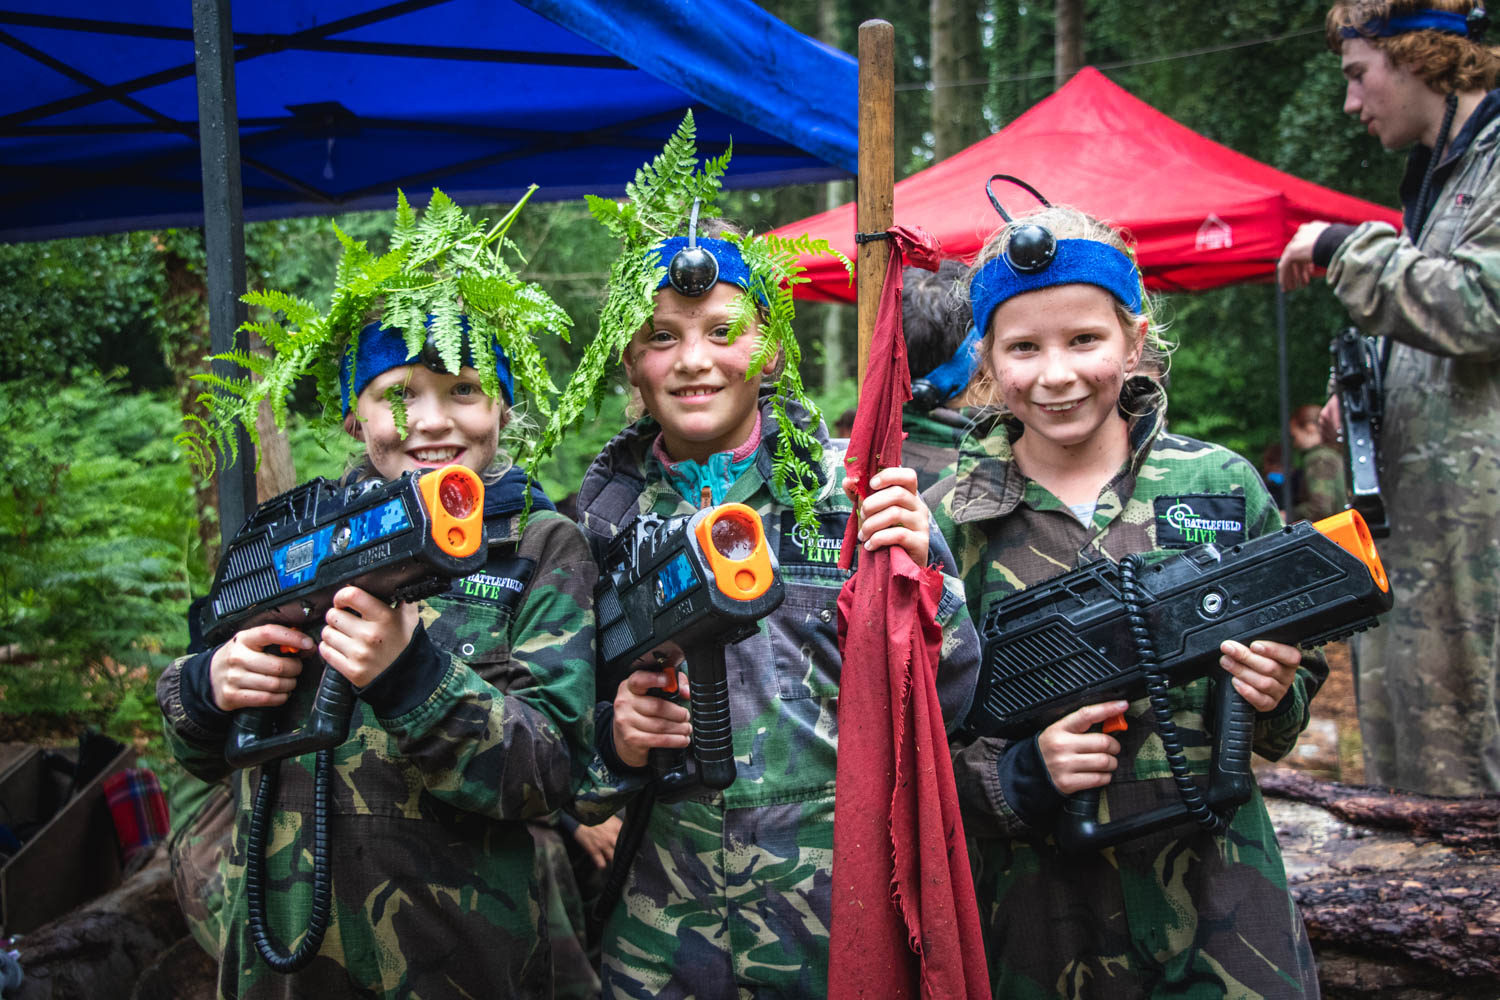 Top tips for planning a kids party